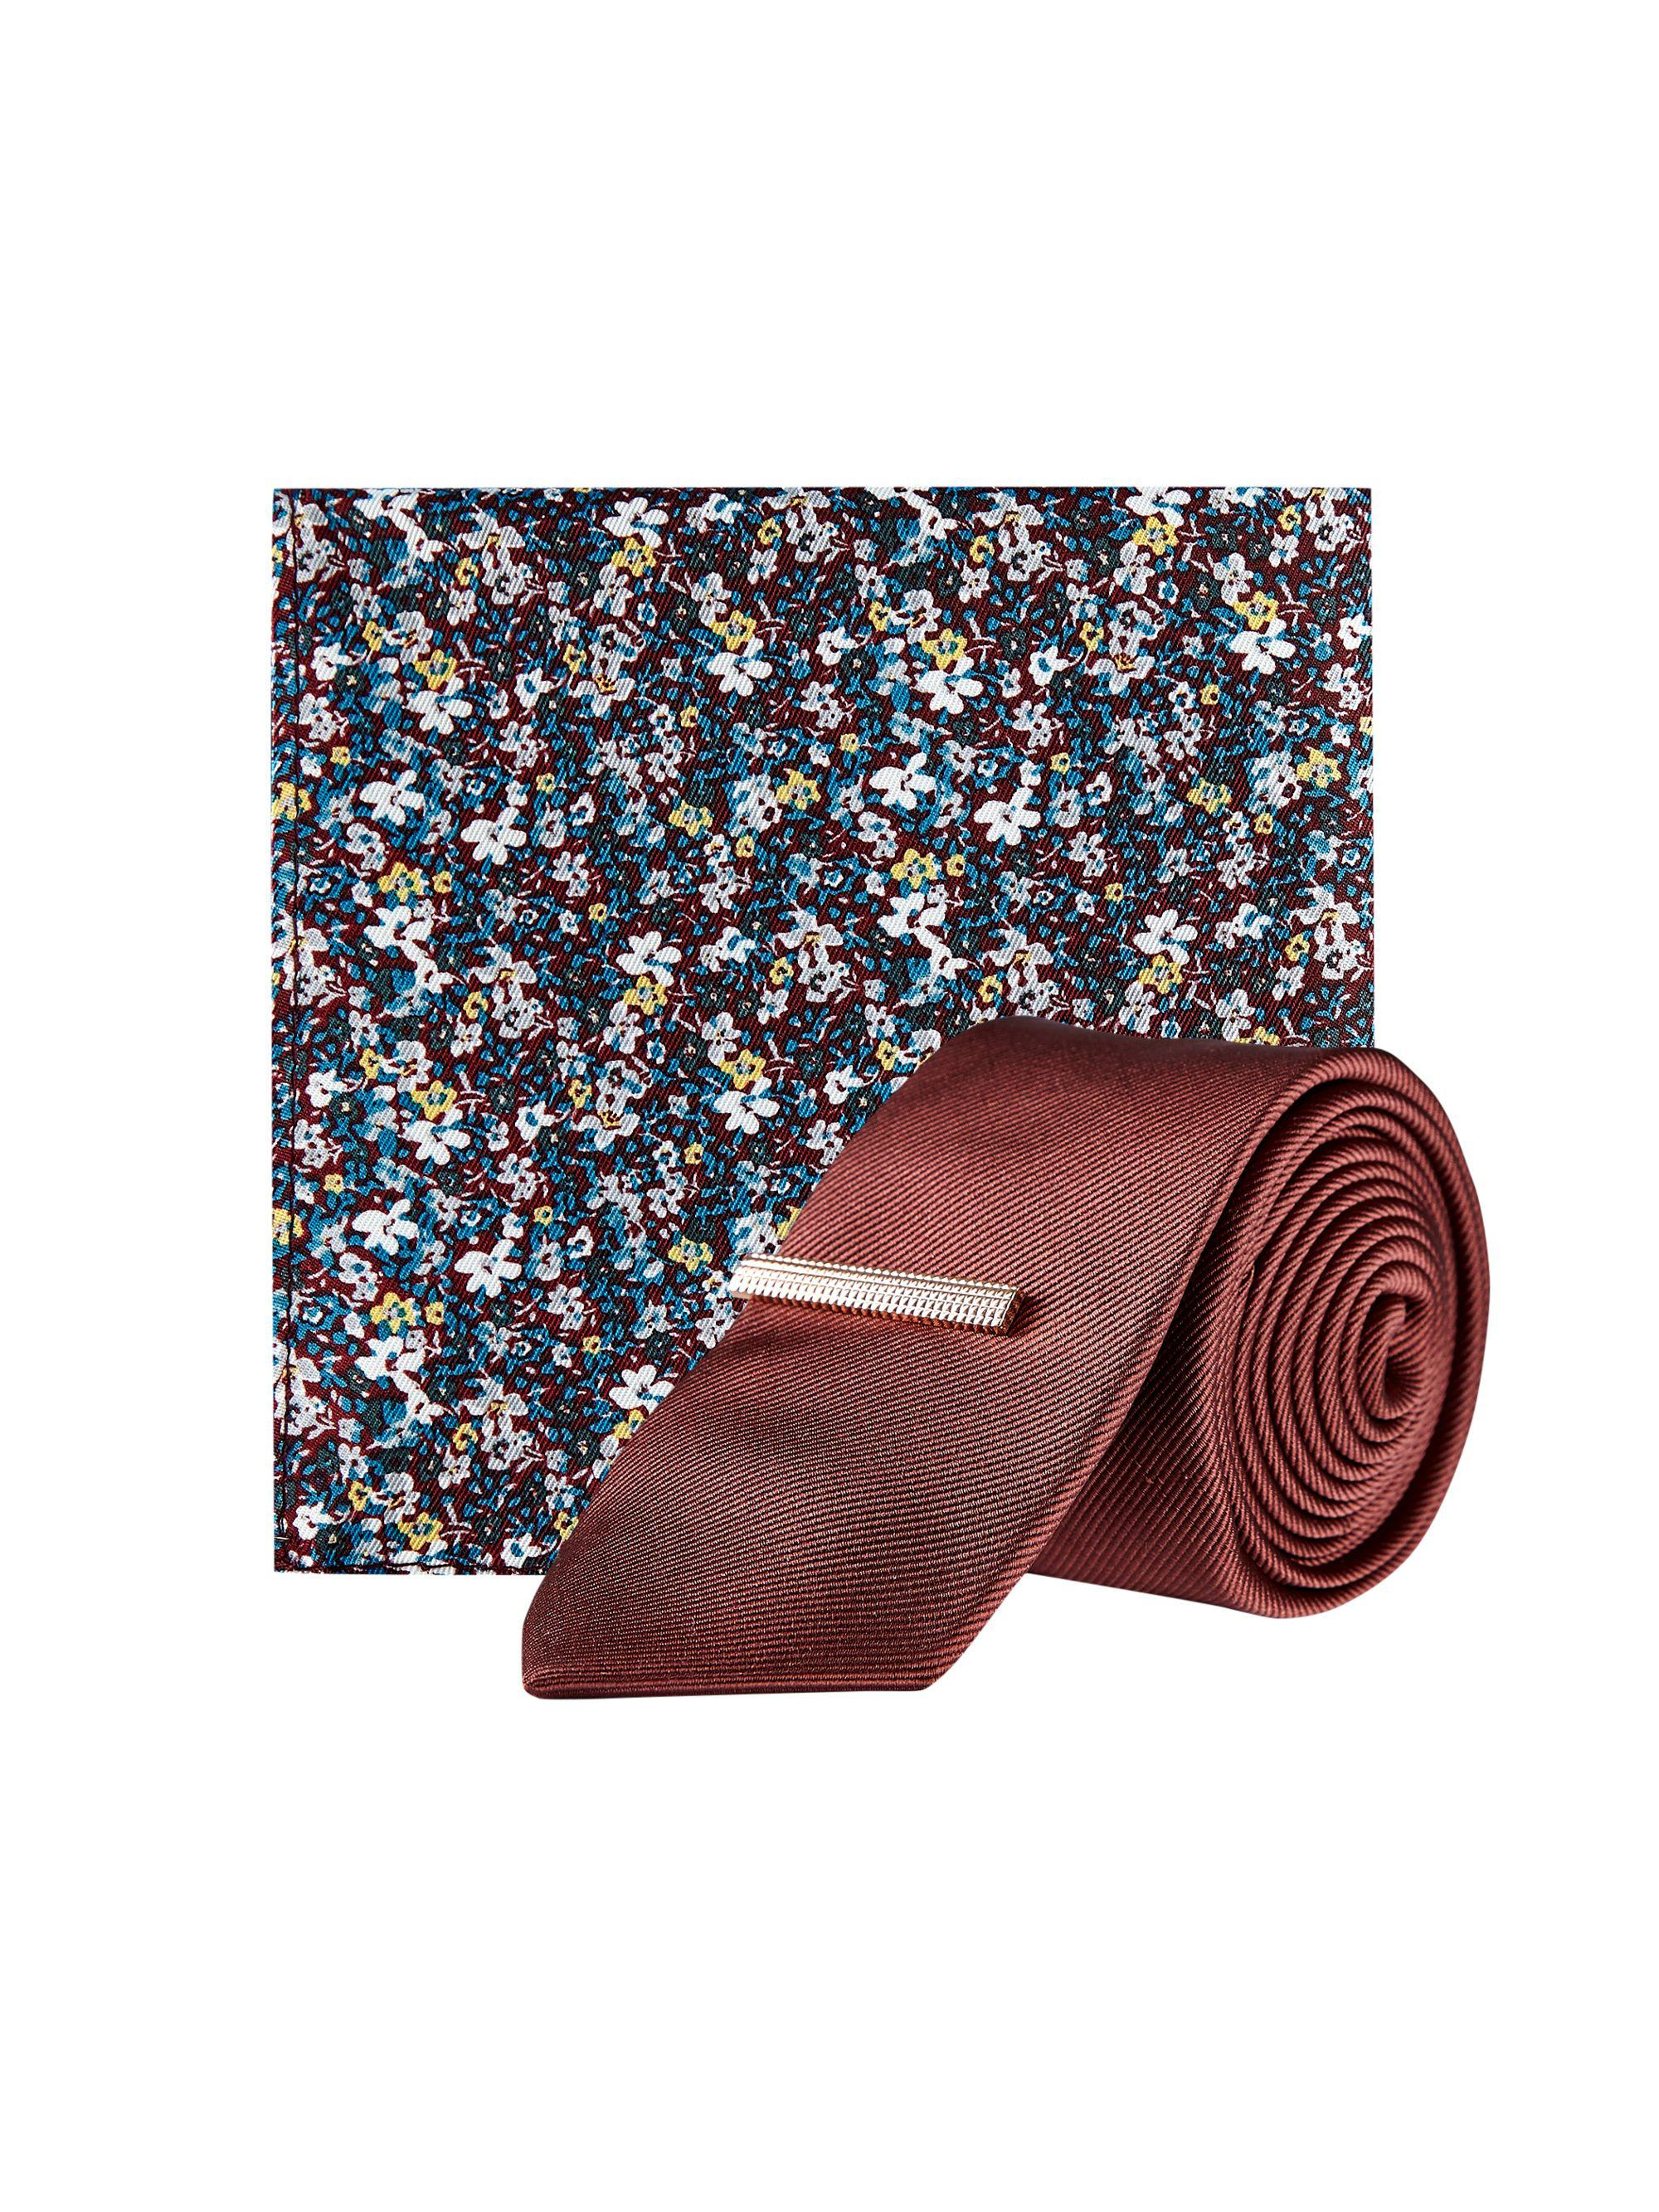 a430c83d4b9b Burton. Men's Red Burgundy Tie With Clip And Ditsy Floral Pocket Square Set